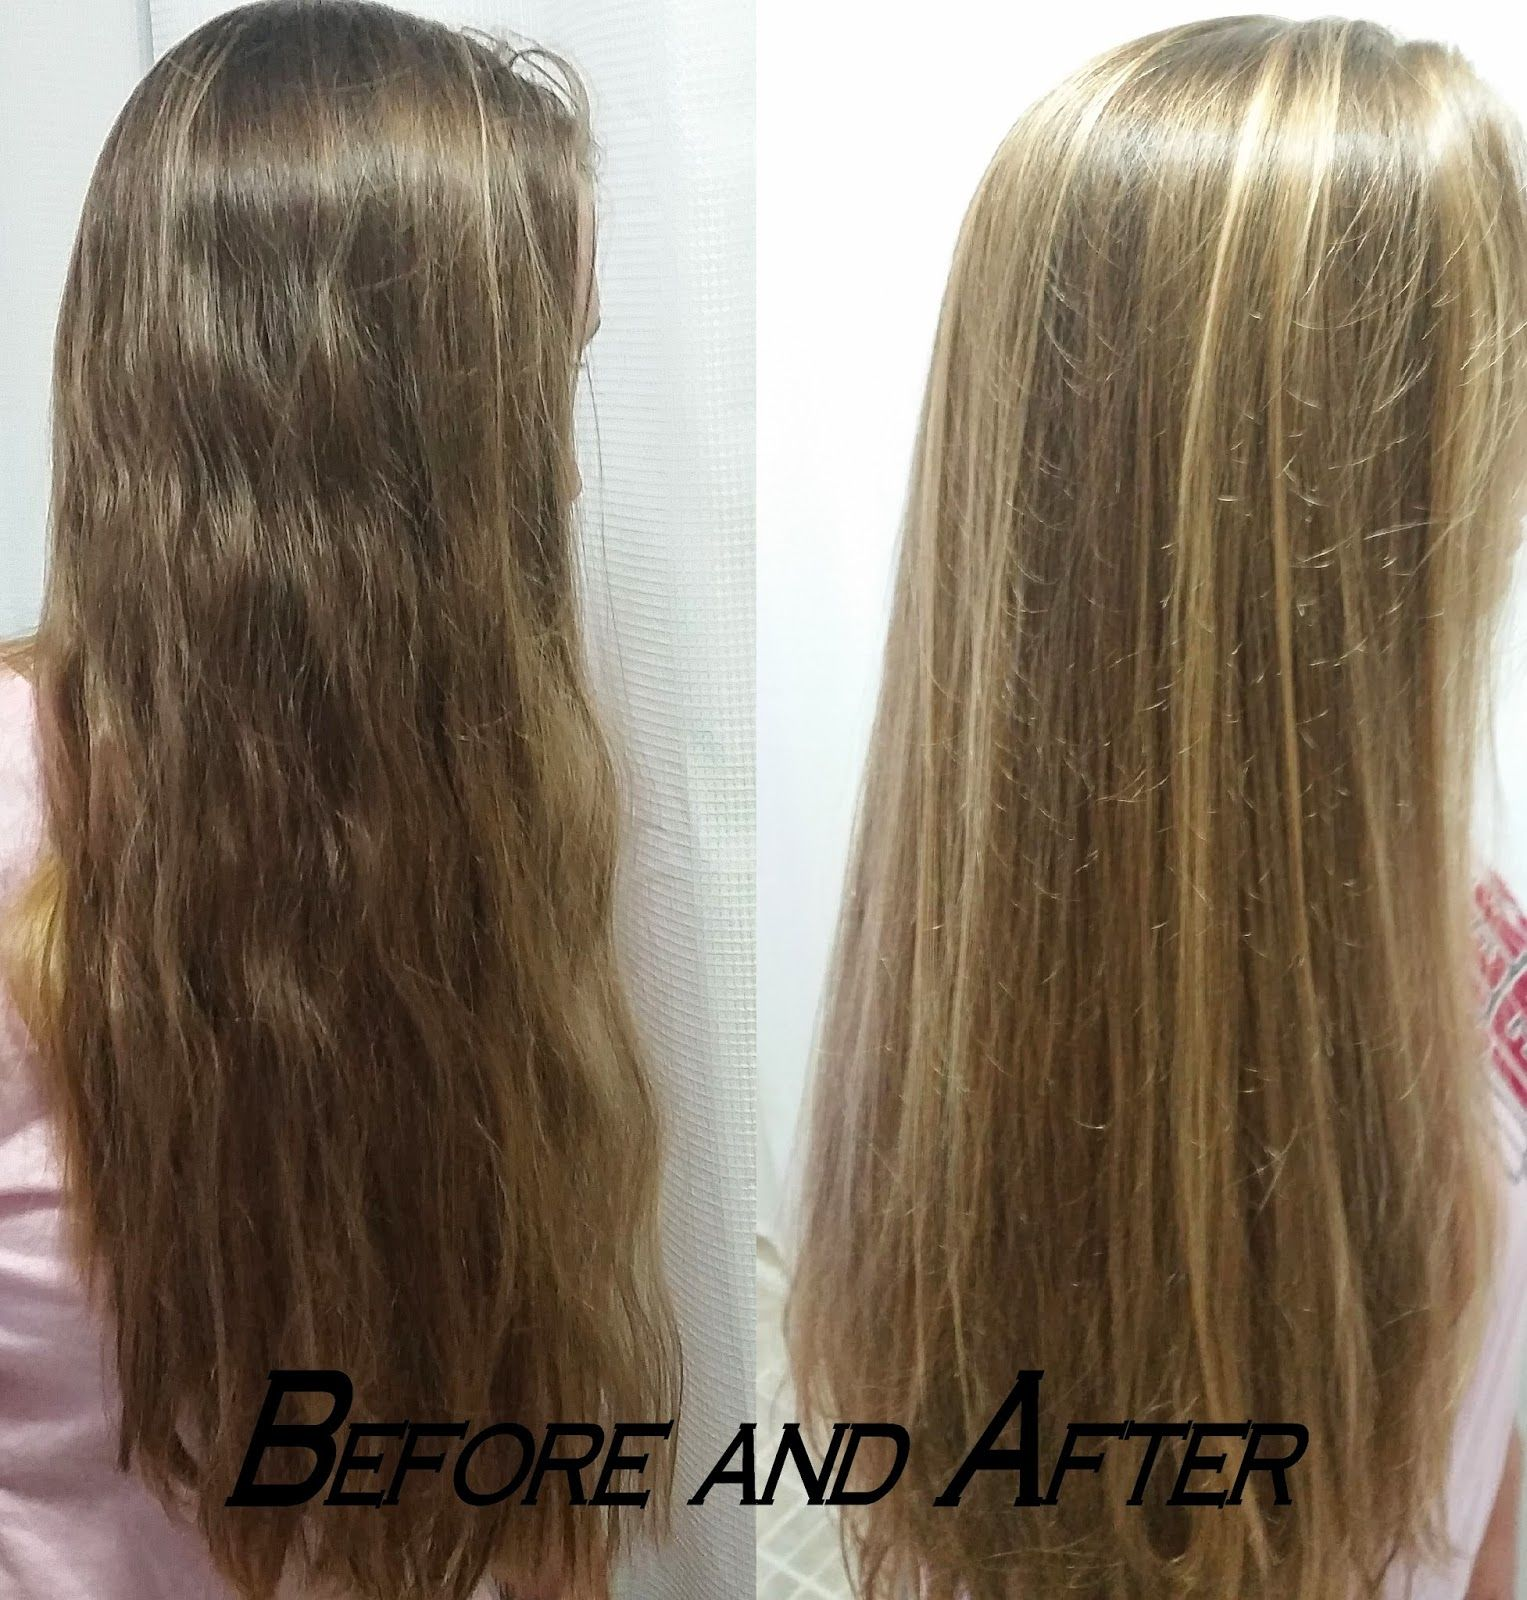 I Had Known About This Forever But Just Finally Got Around To Doing It And Am Very Glad I Tried It The Lighten Hair Naturally How To Lighten Hair Honey Hair